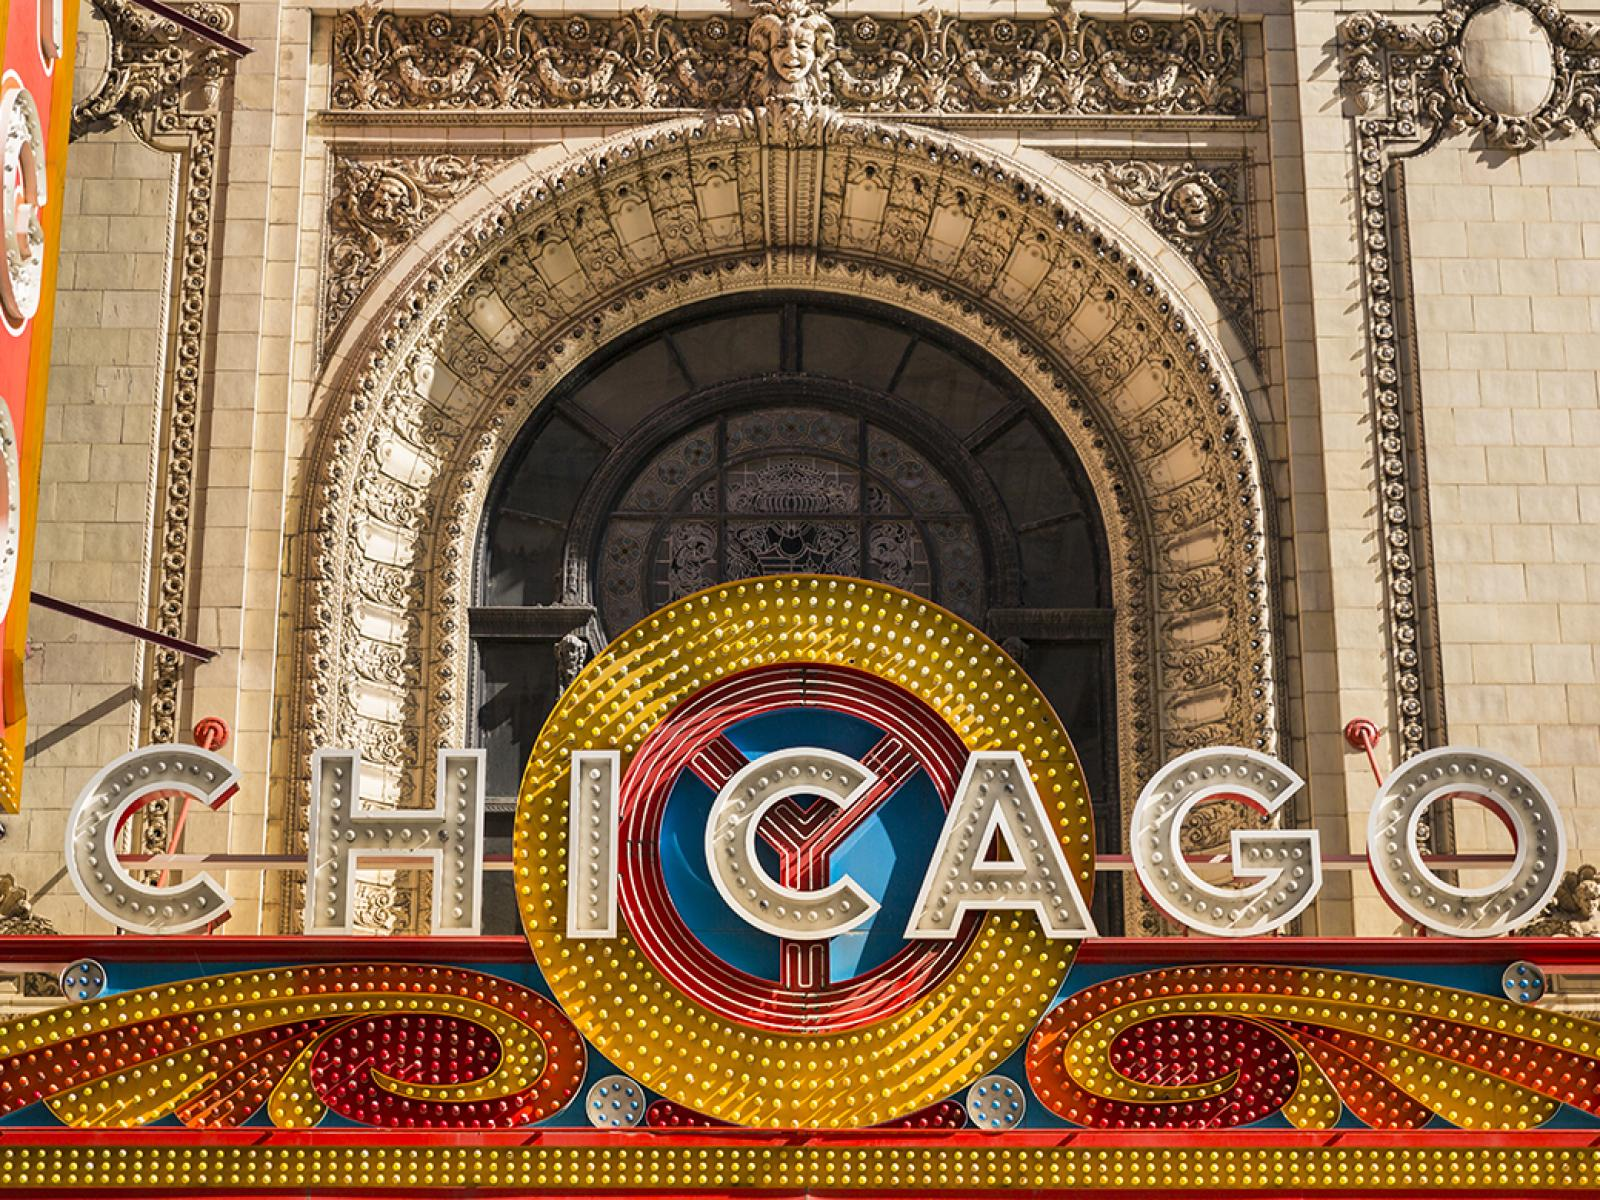 Marquee of Chicago Theater